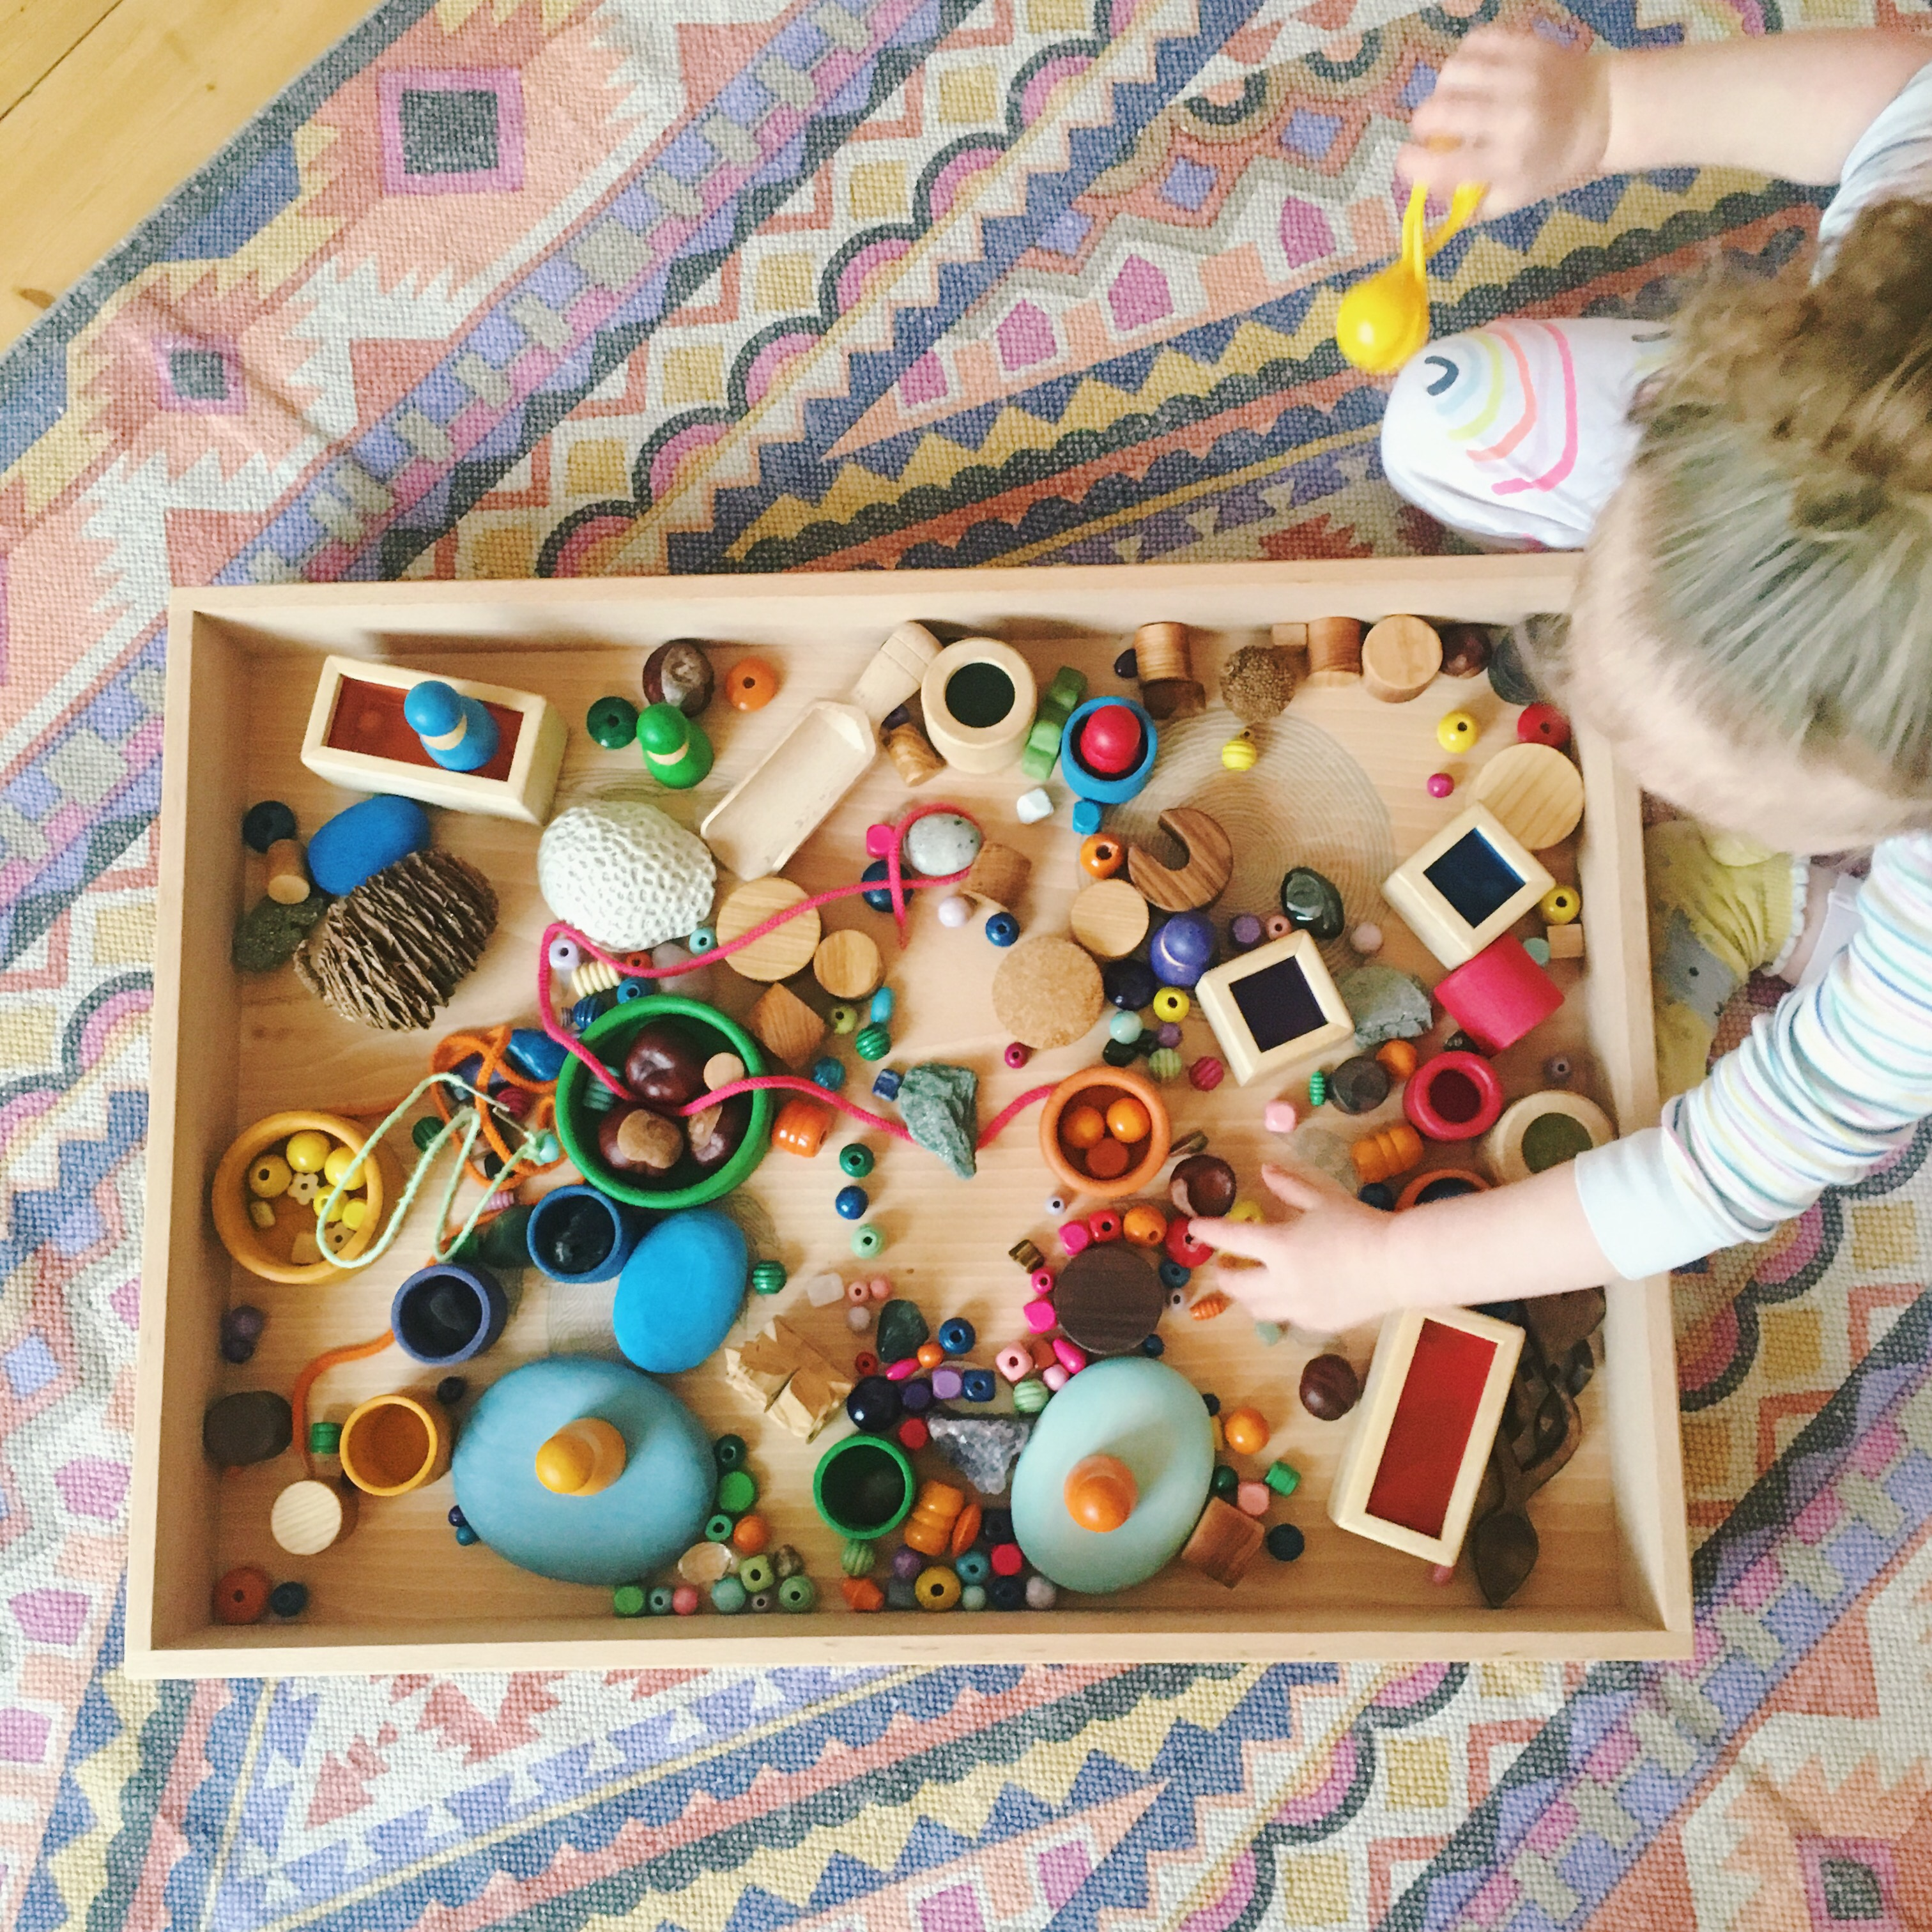 loose parts play: setting up a tinker tray – frida be mighty